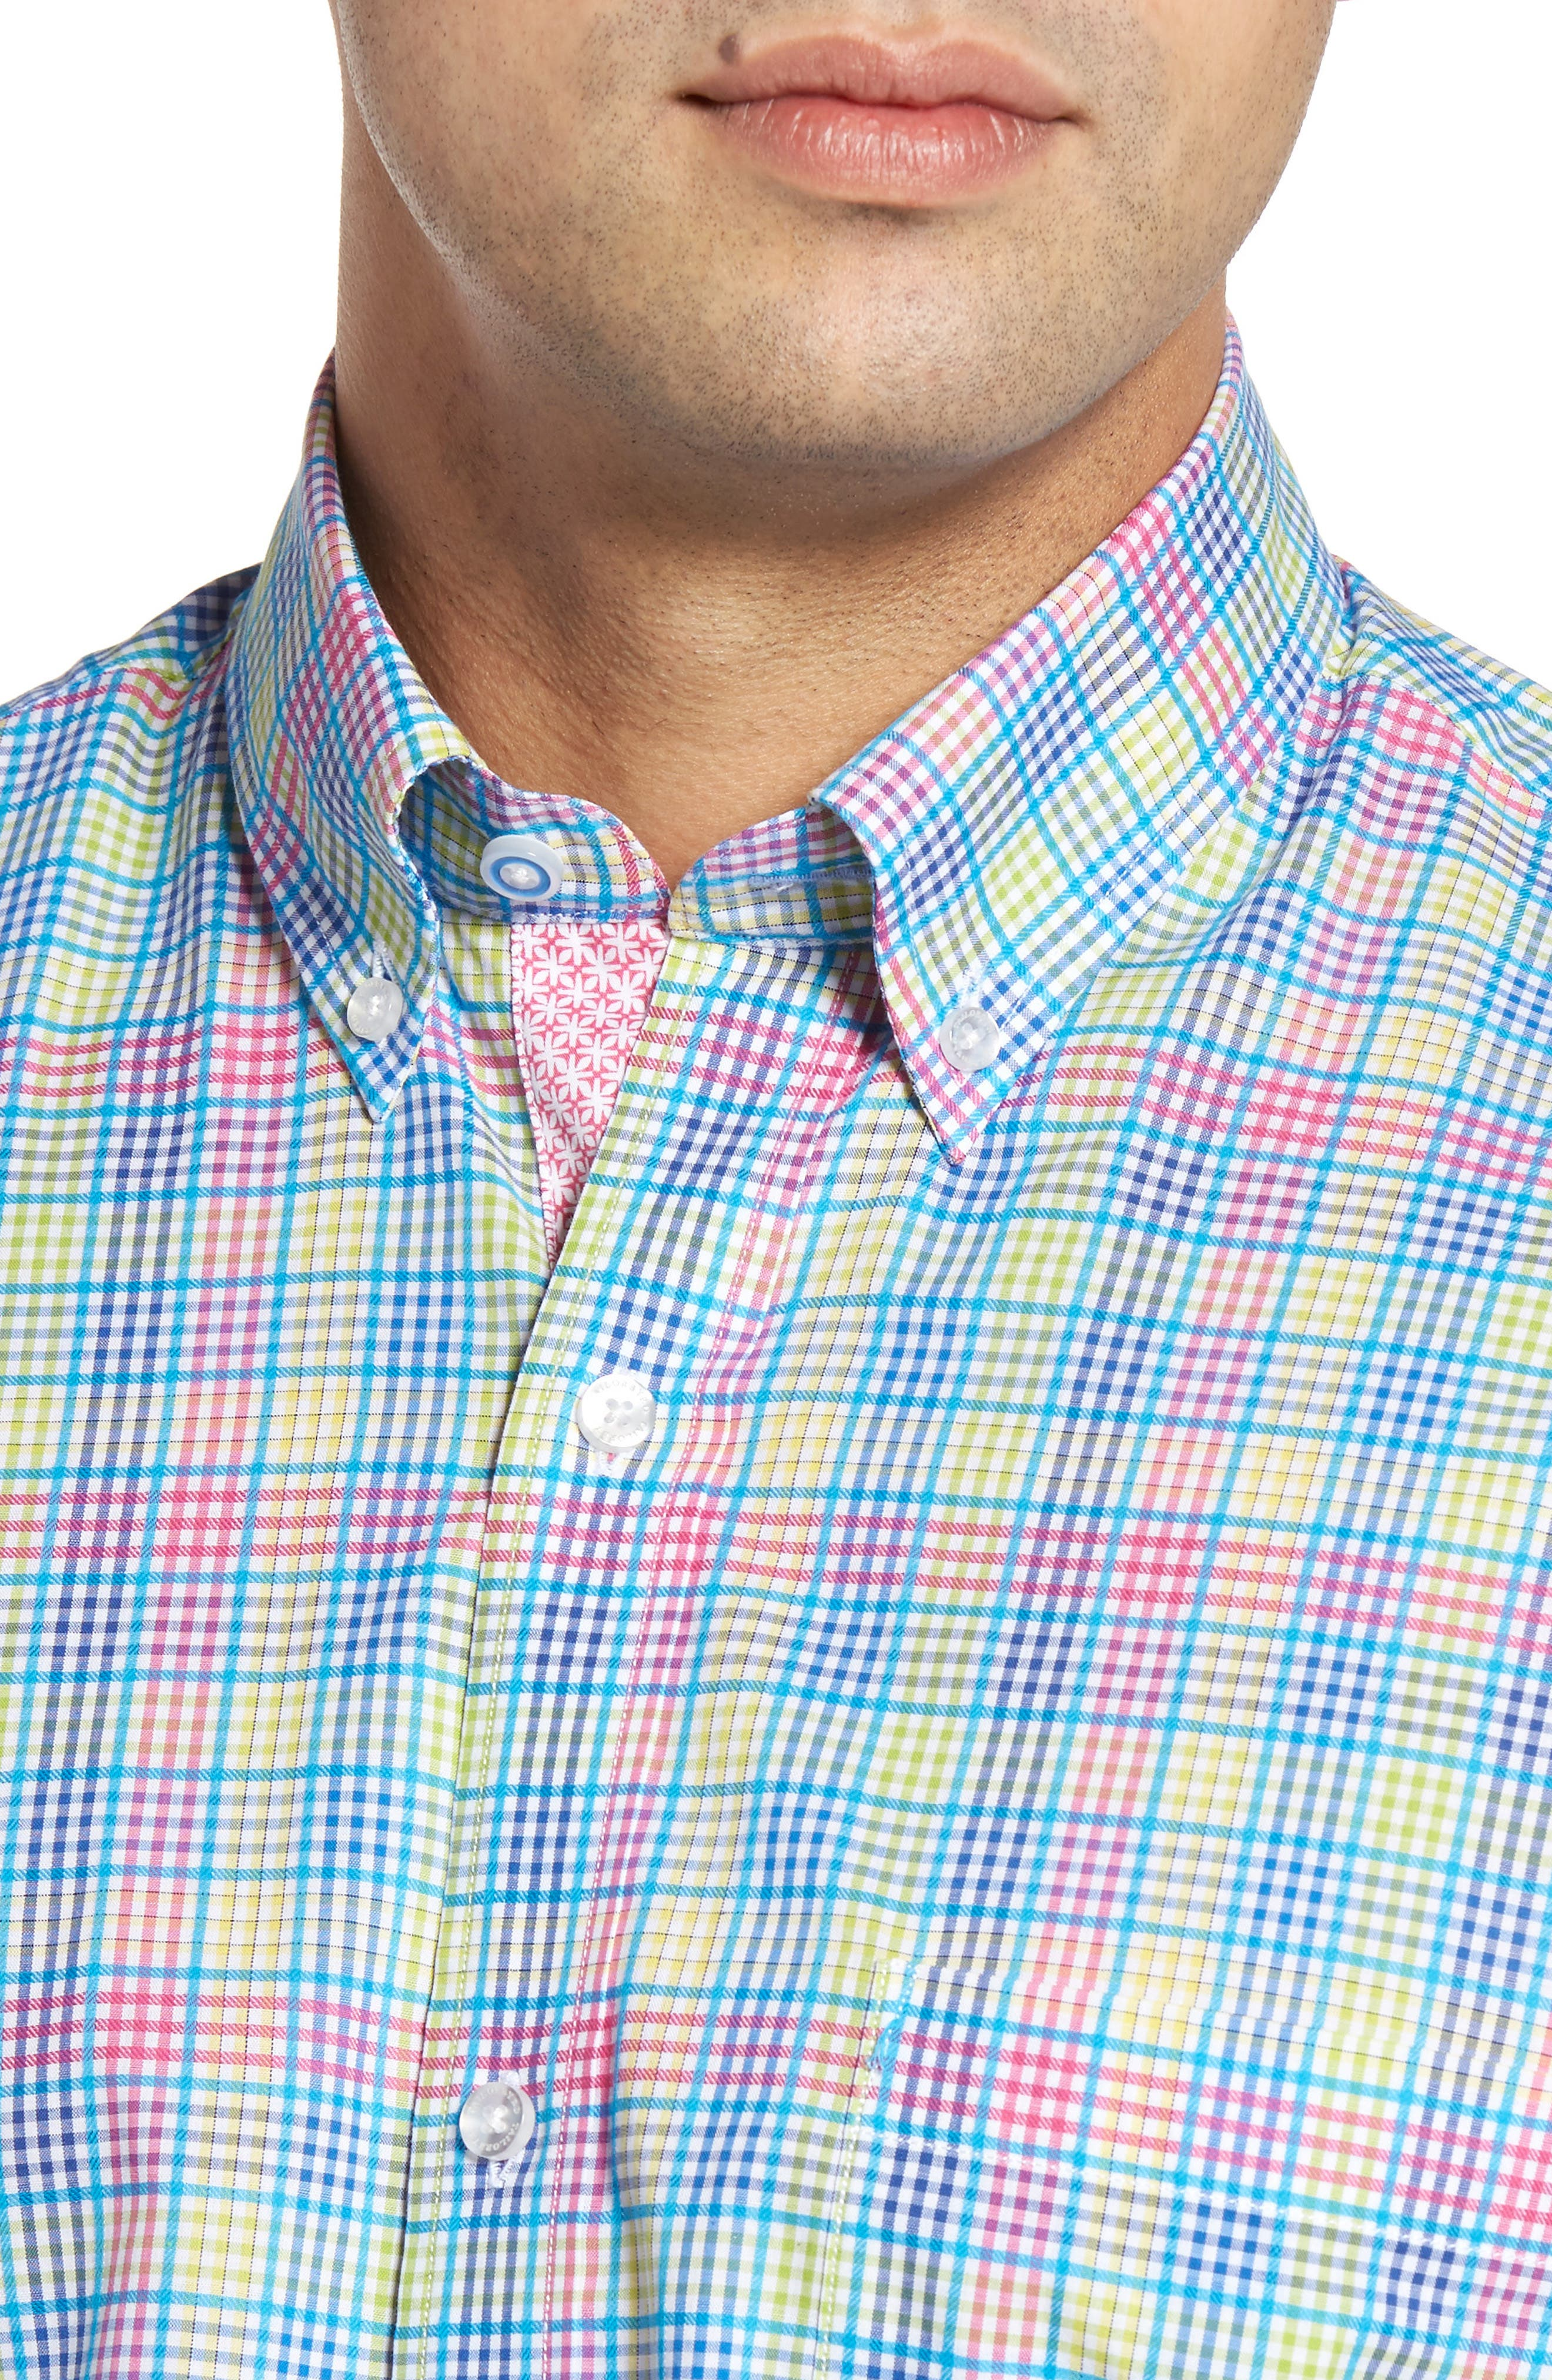 Peachleaf Sport Shirt,                             Alternate thumbnail 4, color,                             400